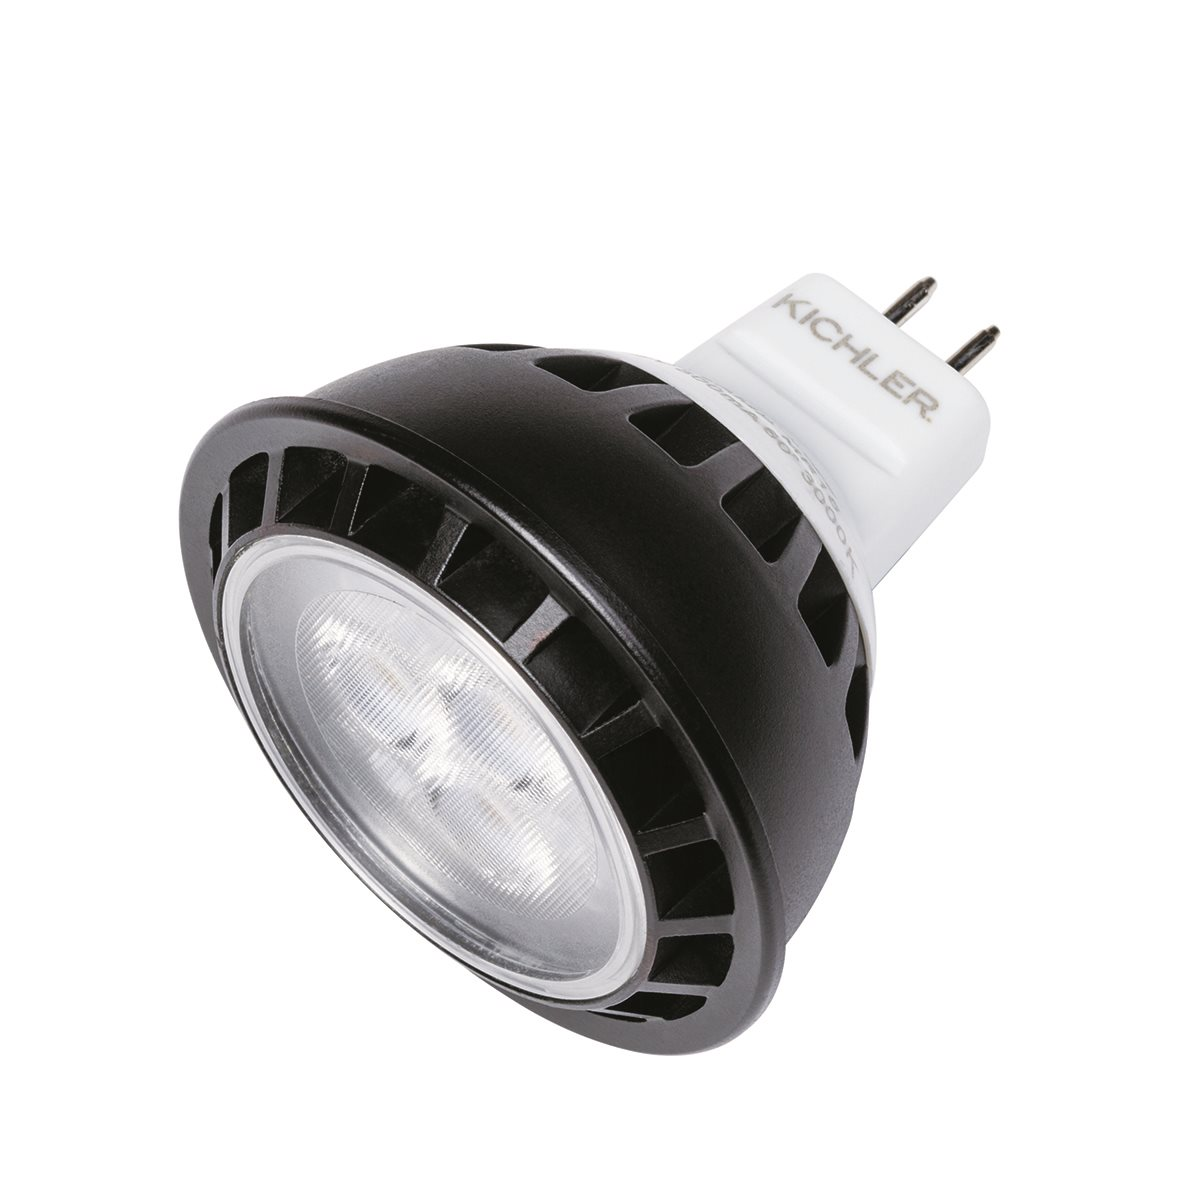 Kichler Lighting Utilitarian Landscape 12V LED Lamp - 18132